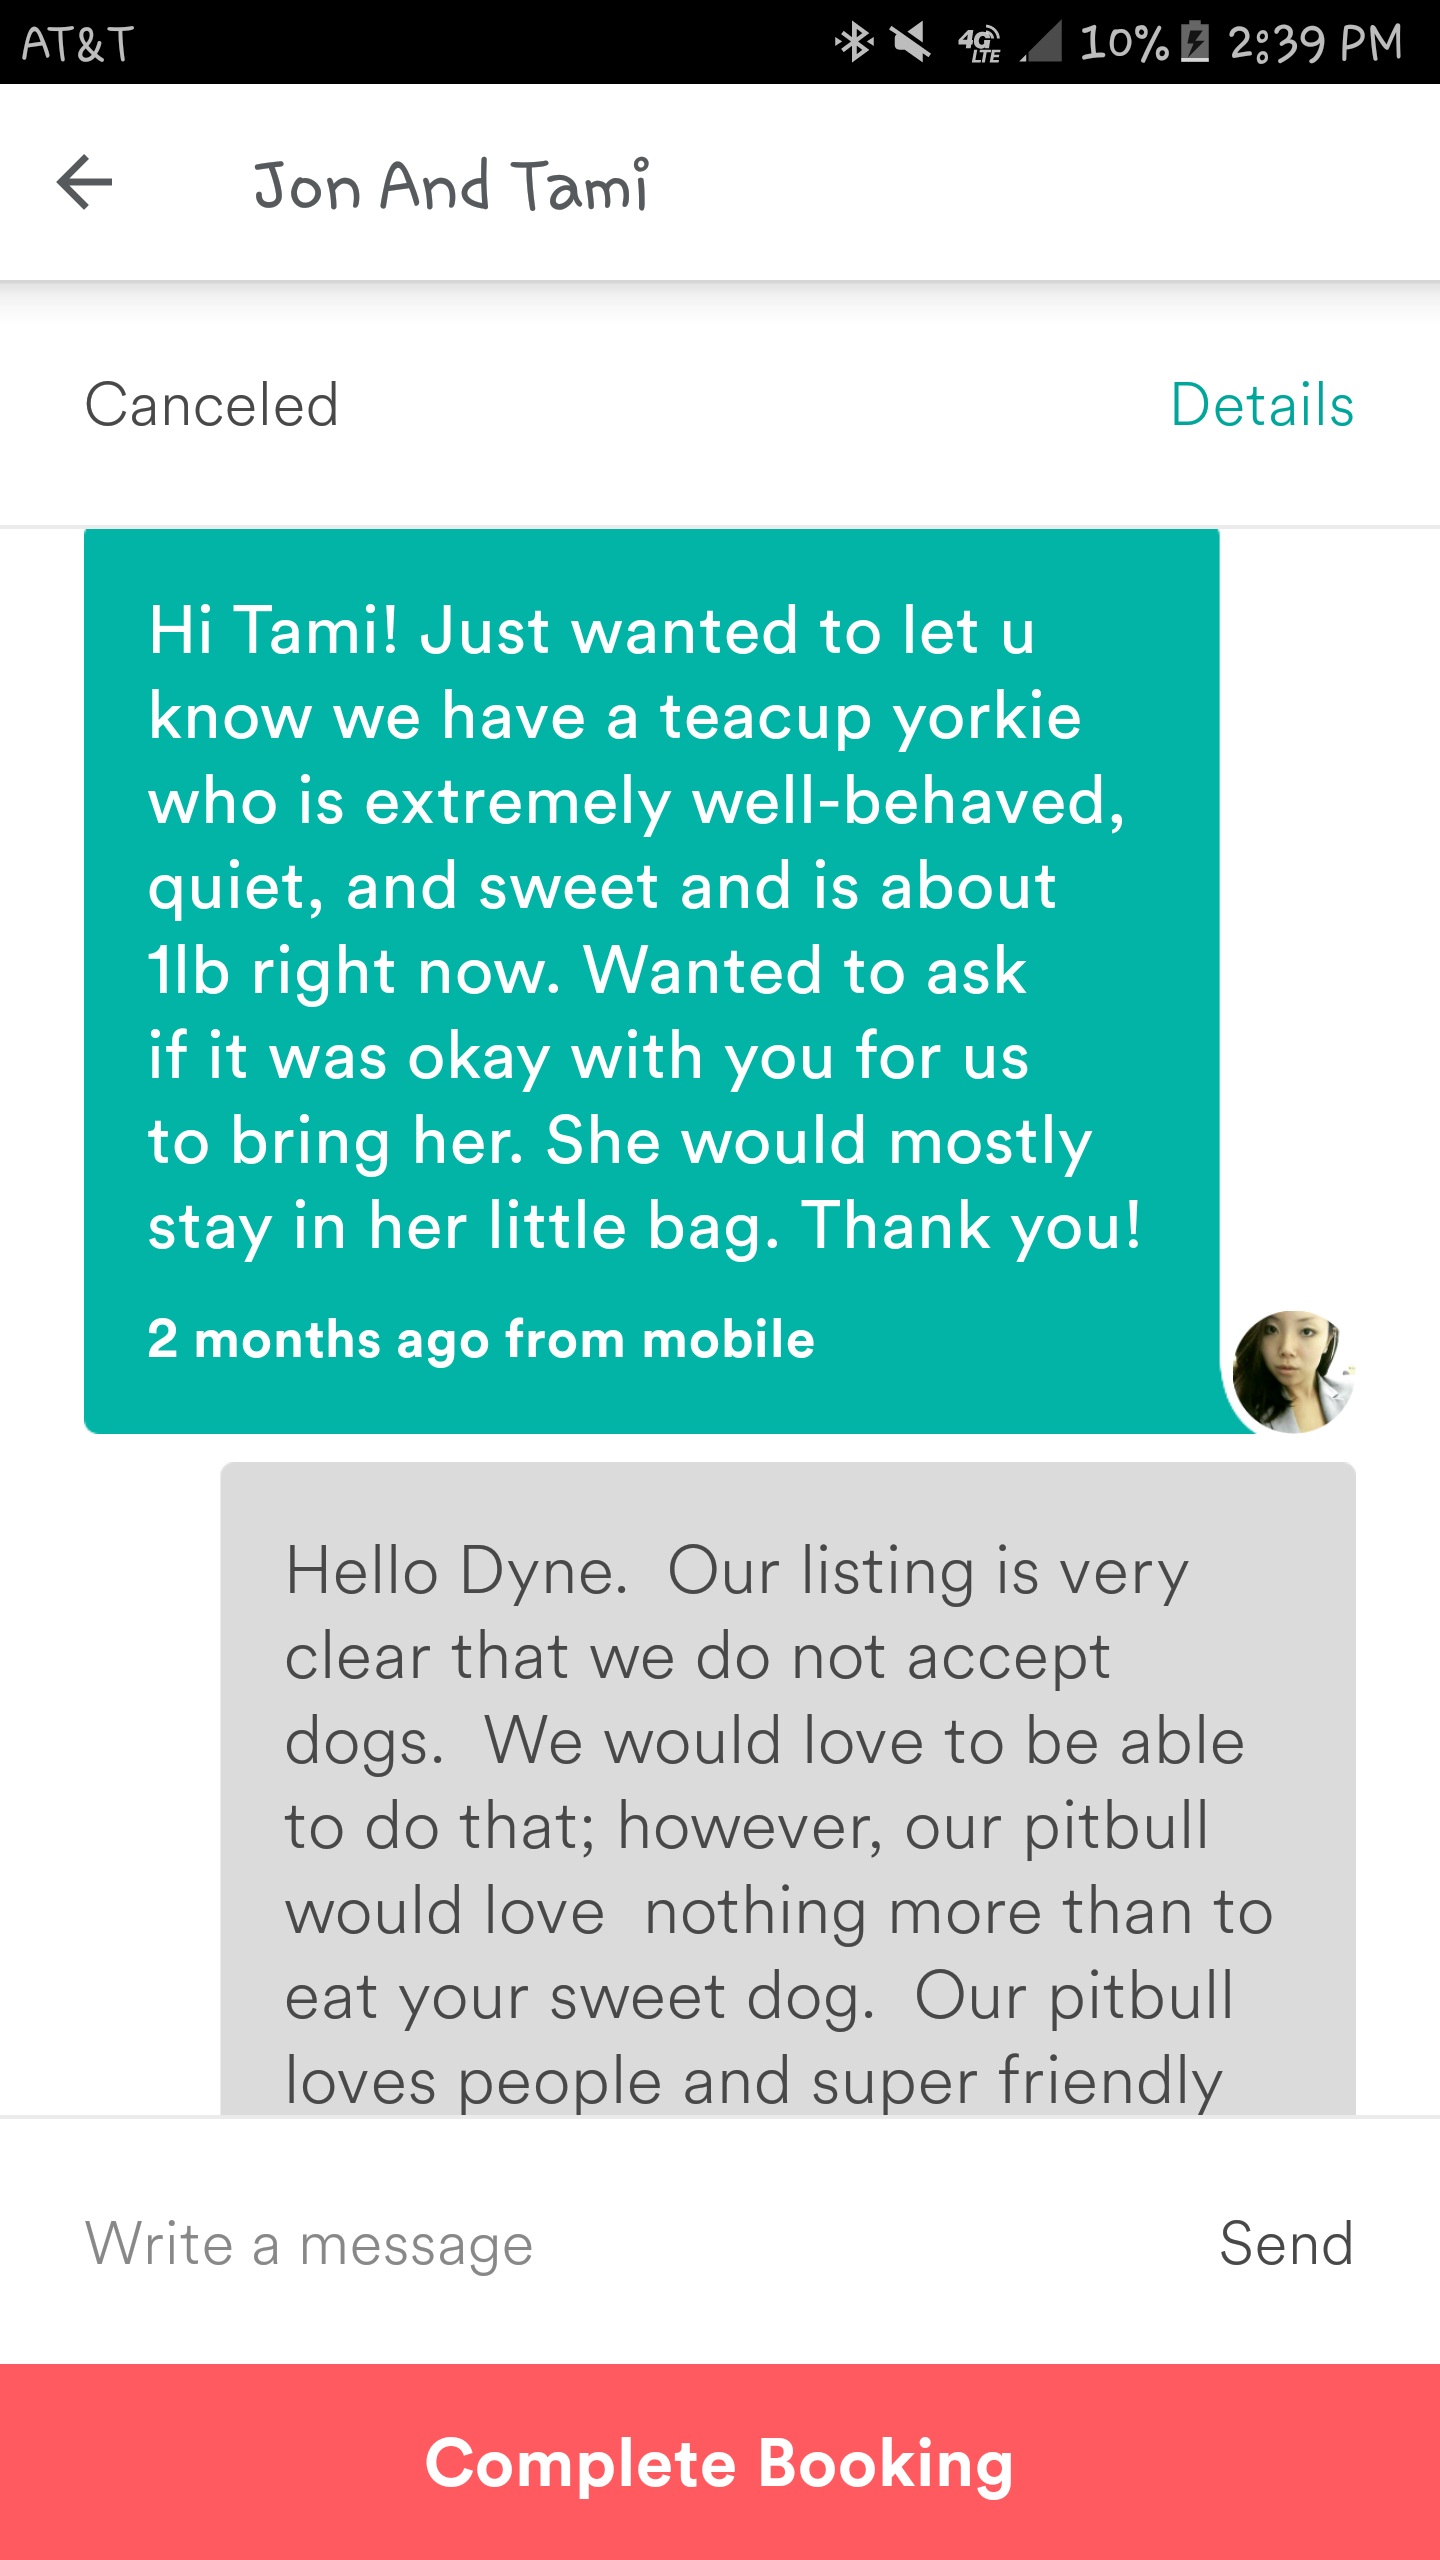 Conversation between Tami Barker andDyne Suhabout bringing dogs to the house (Part 1)